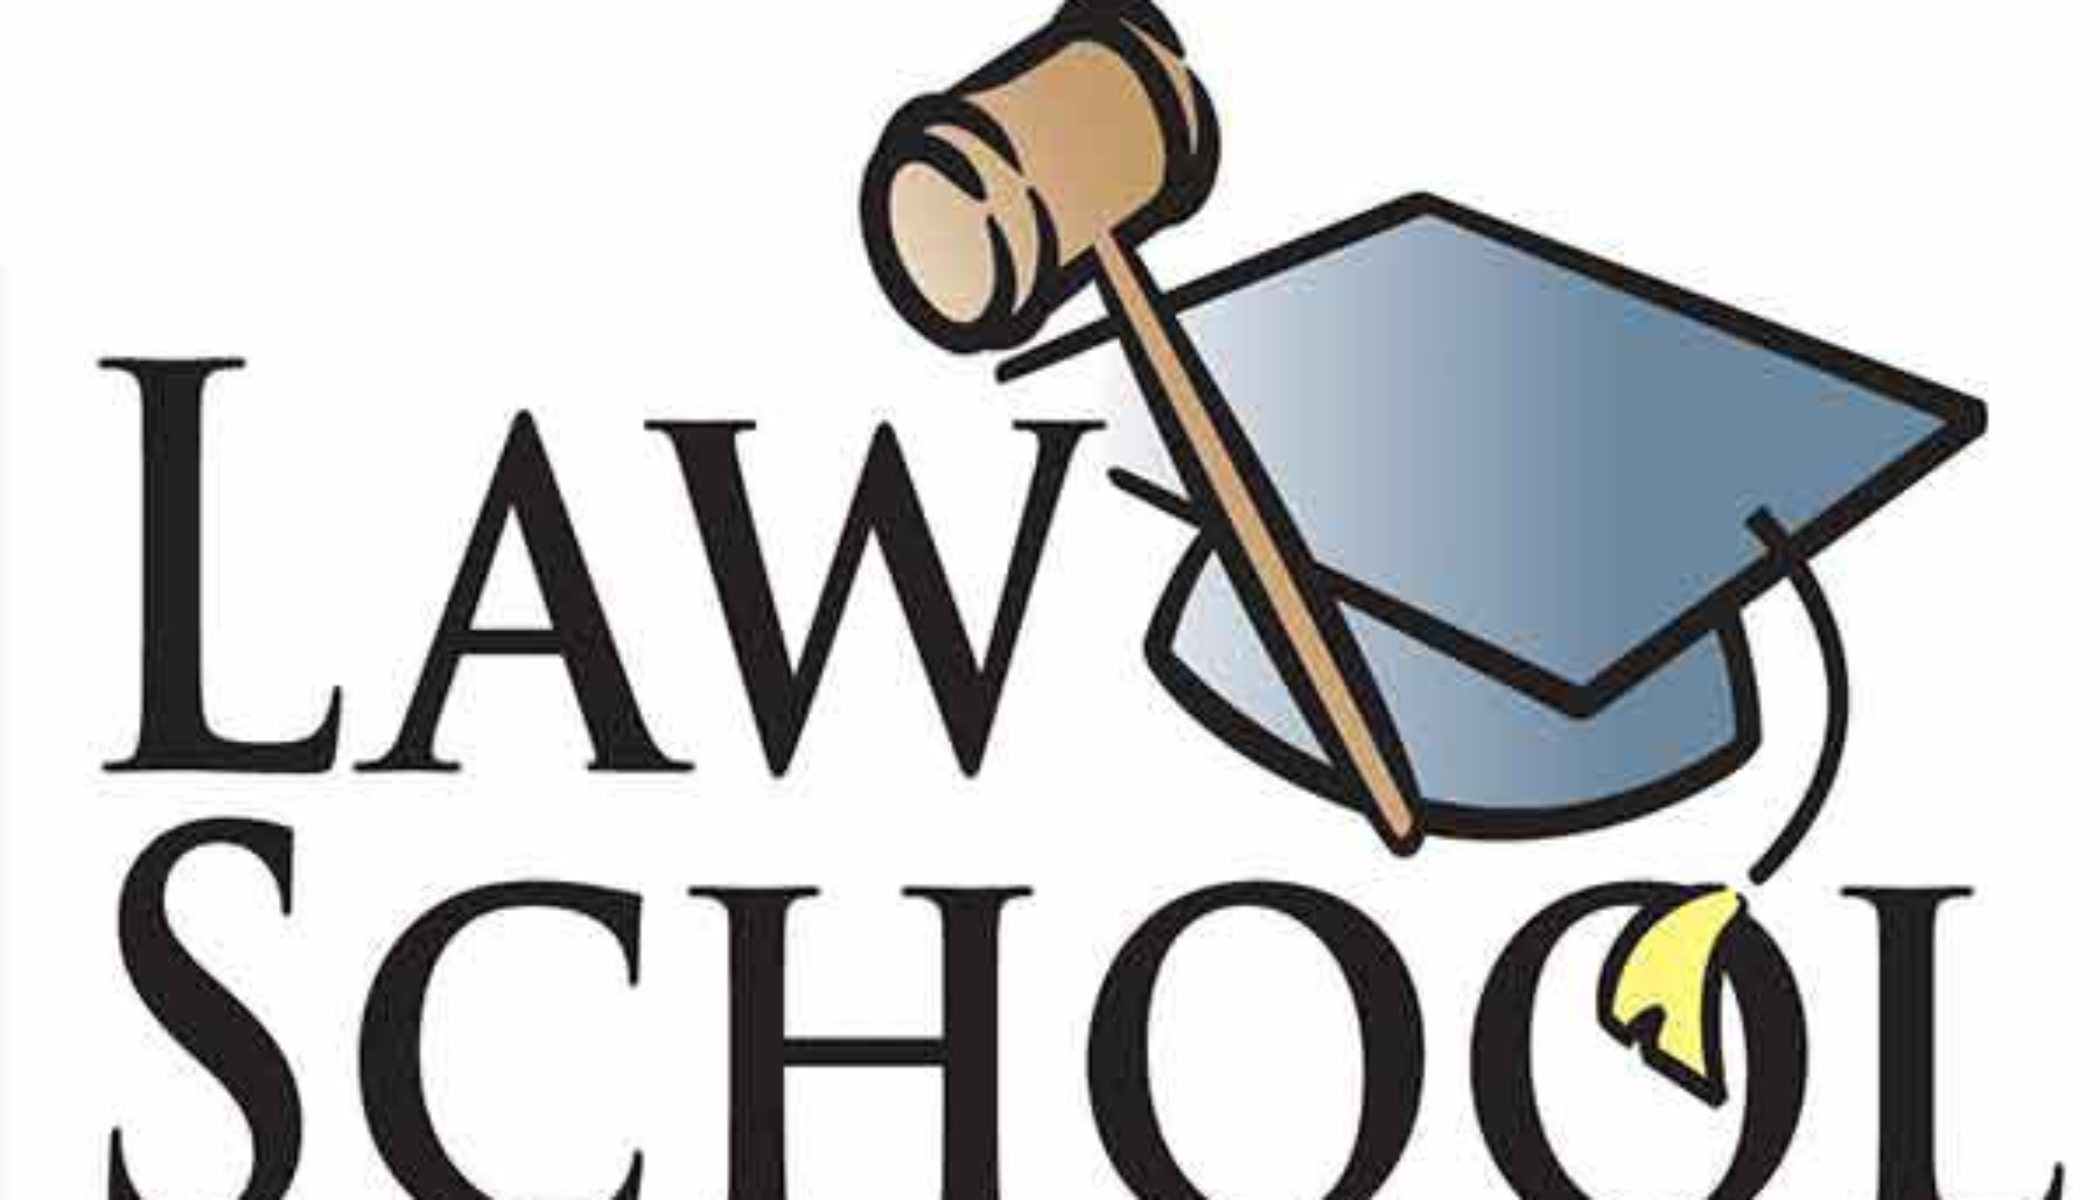 sacred of law. Laws clipart passed